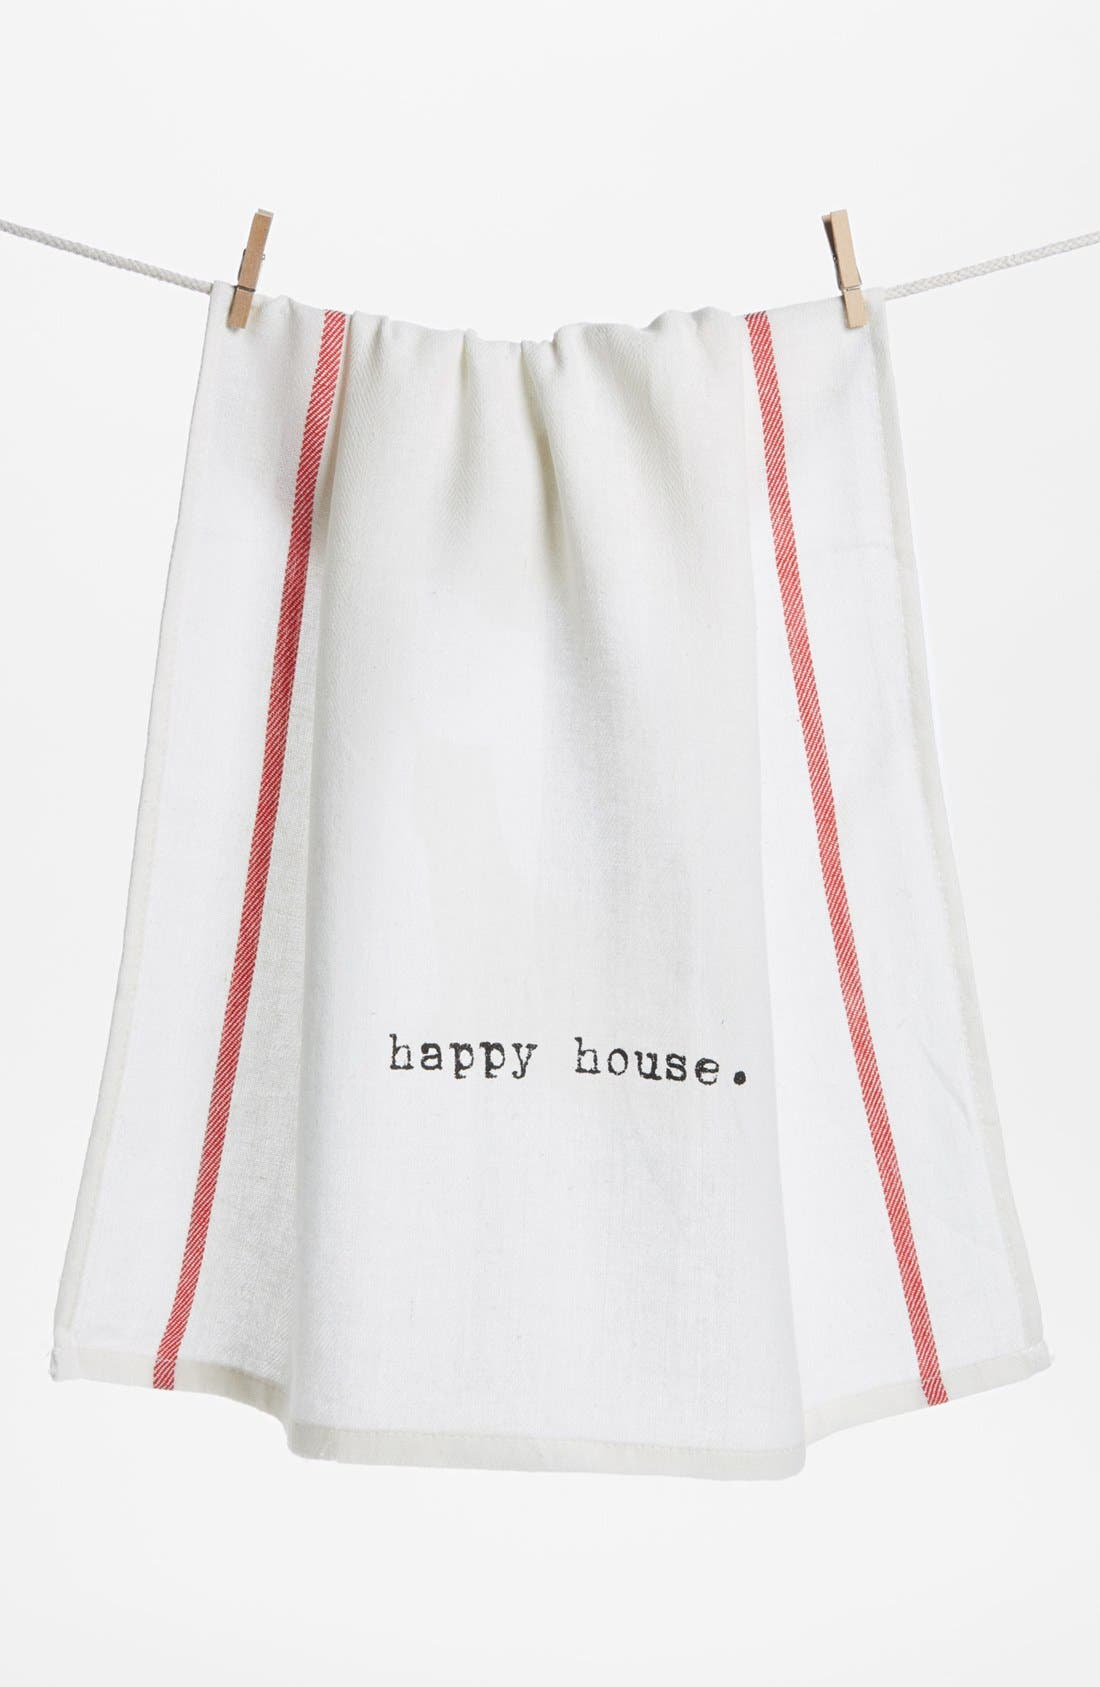 Alternate Image 1 Selected - Second Nature by Hand 'Happy House' Towel